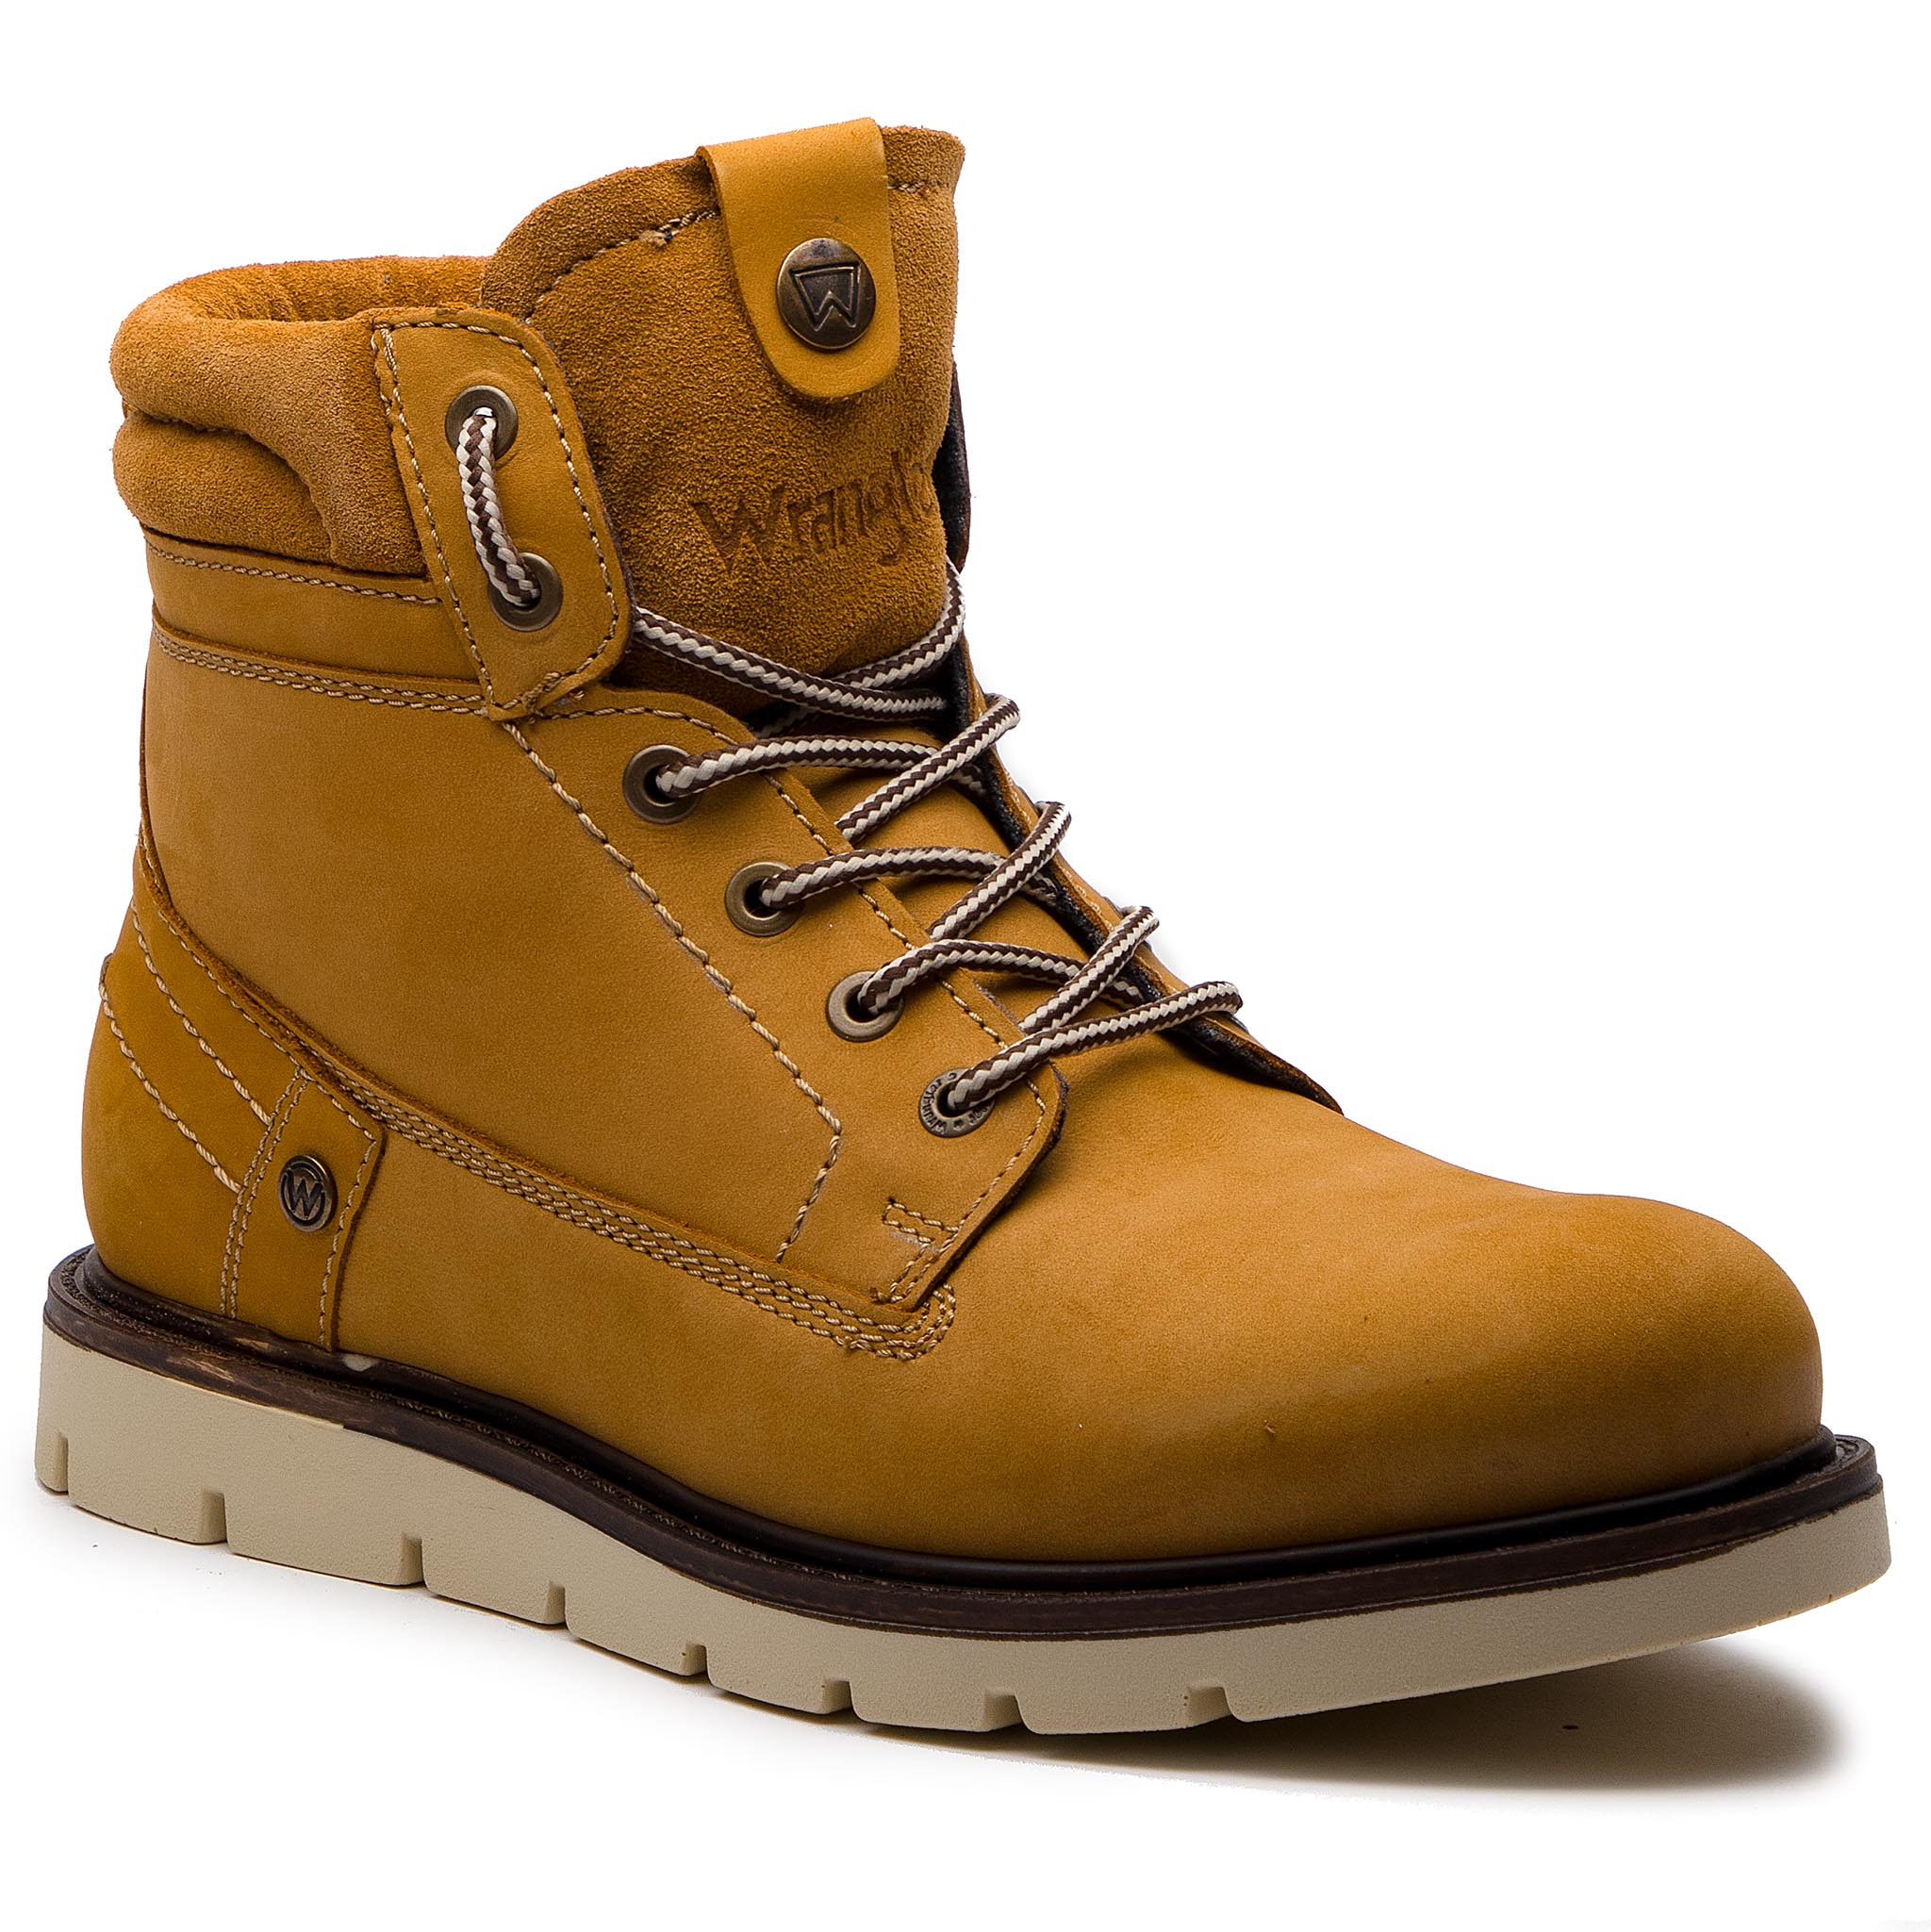 Cizme WRANGLER - Tucson WM182010 Tan Yellow 24